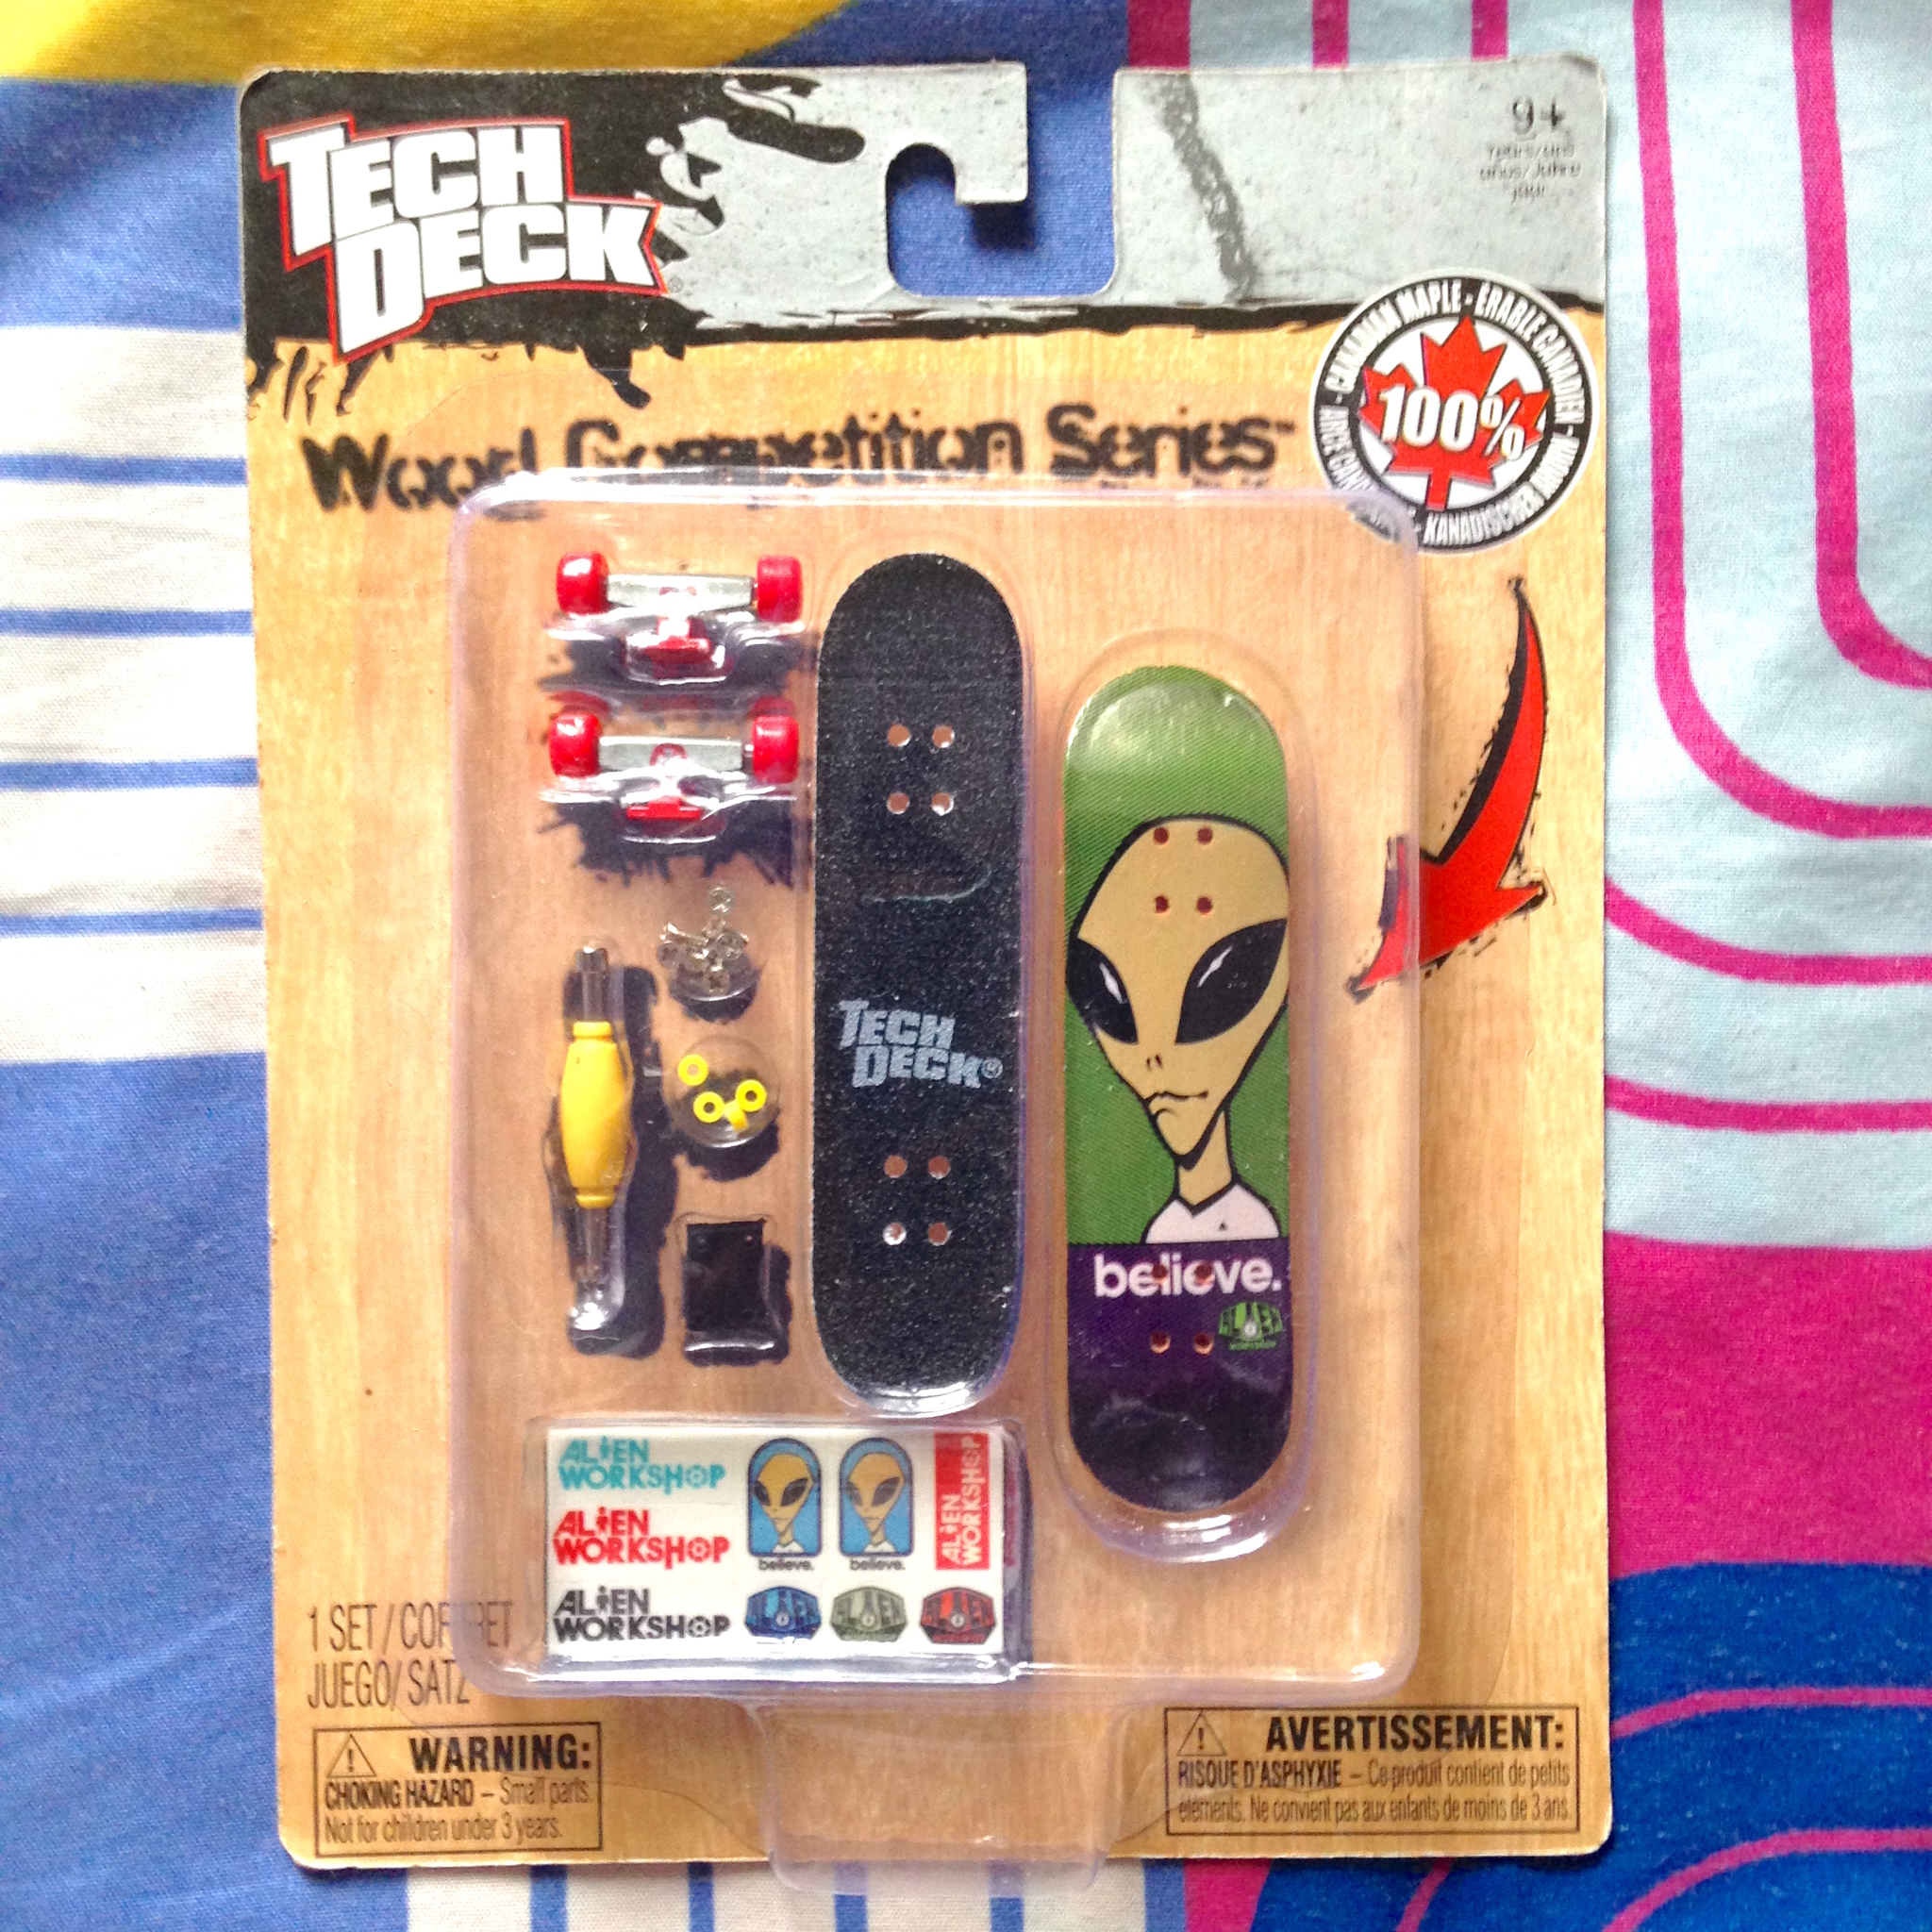 Jual tech deck woodenkayu competition series alien workshop jual tech deck woodenkayu competition series alien workshop zov shop tokopedia baanklon Image collections